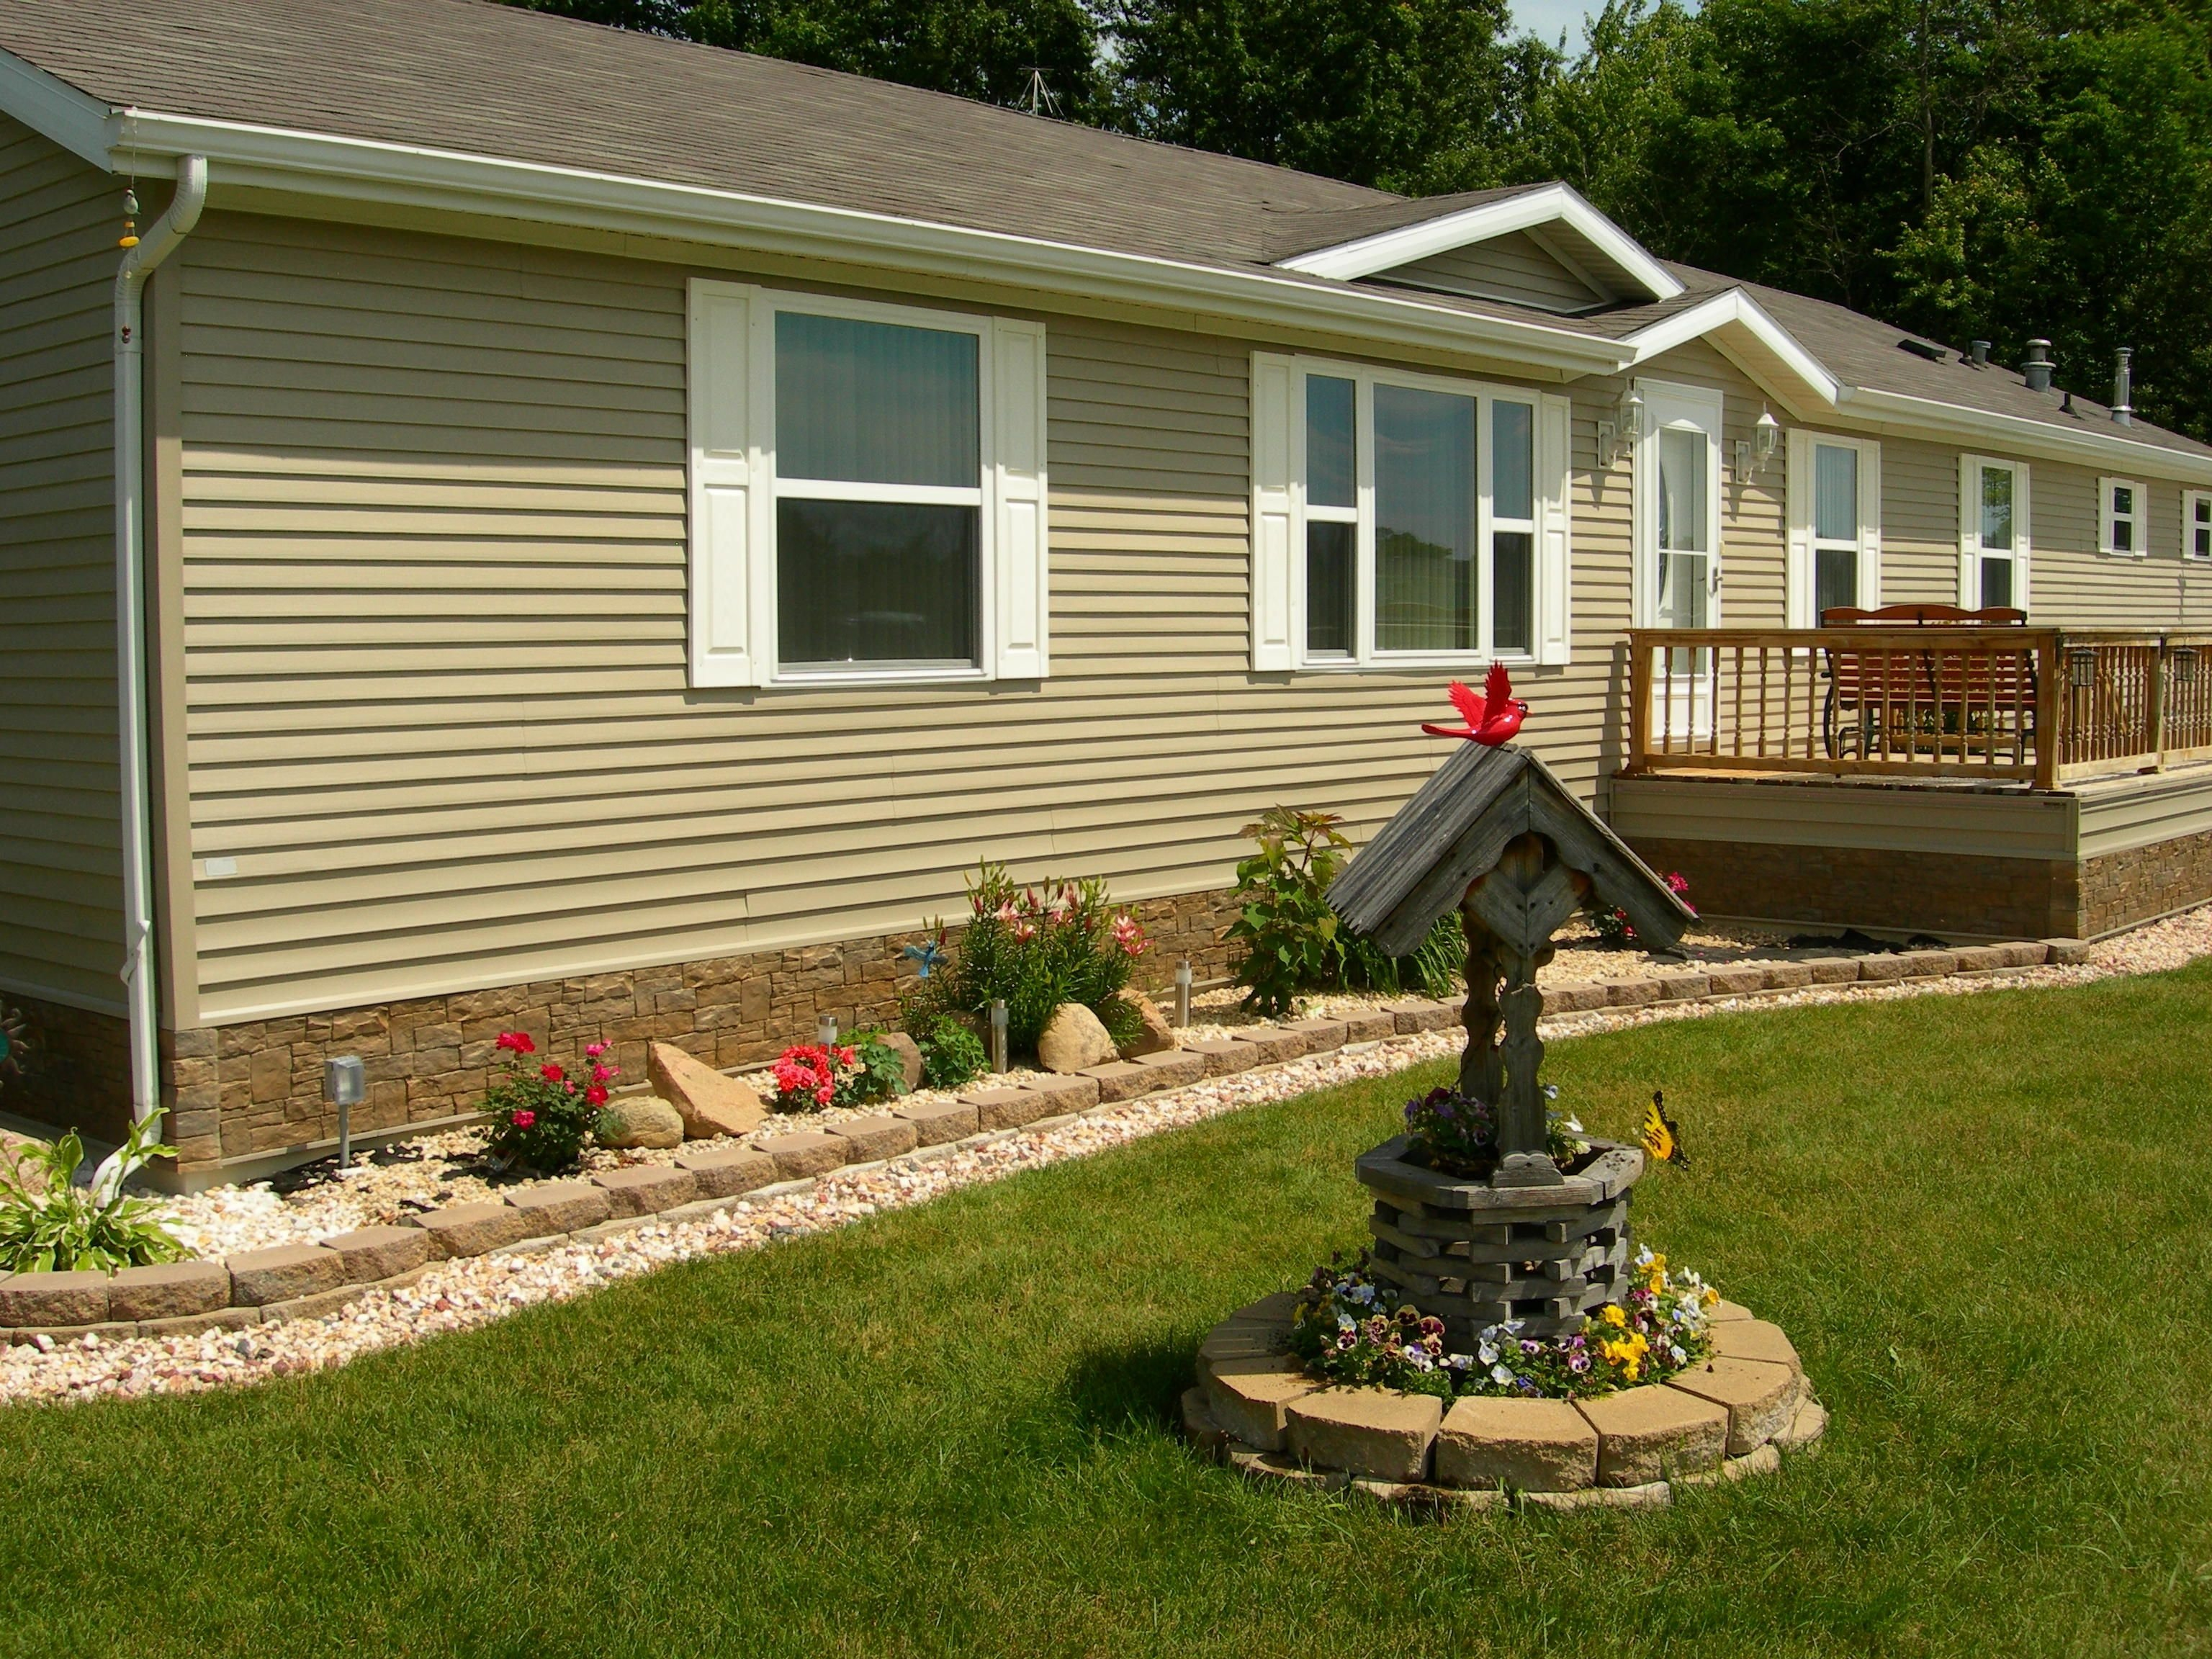 10 Most Recommended Landscaping Ideas For Mobile Homes mobile homes with brick skirting google search mobile home